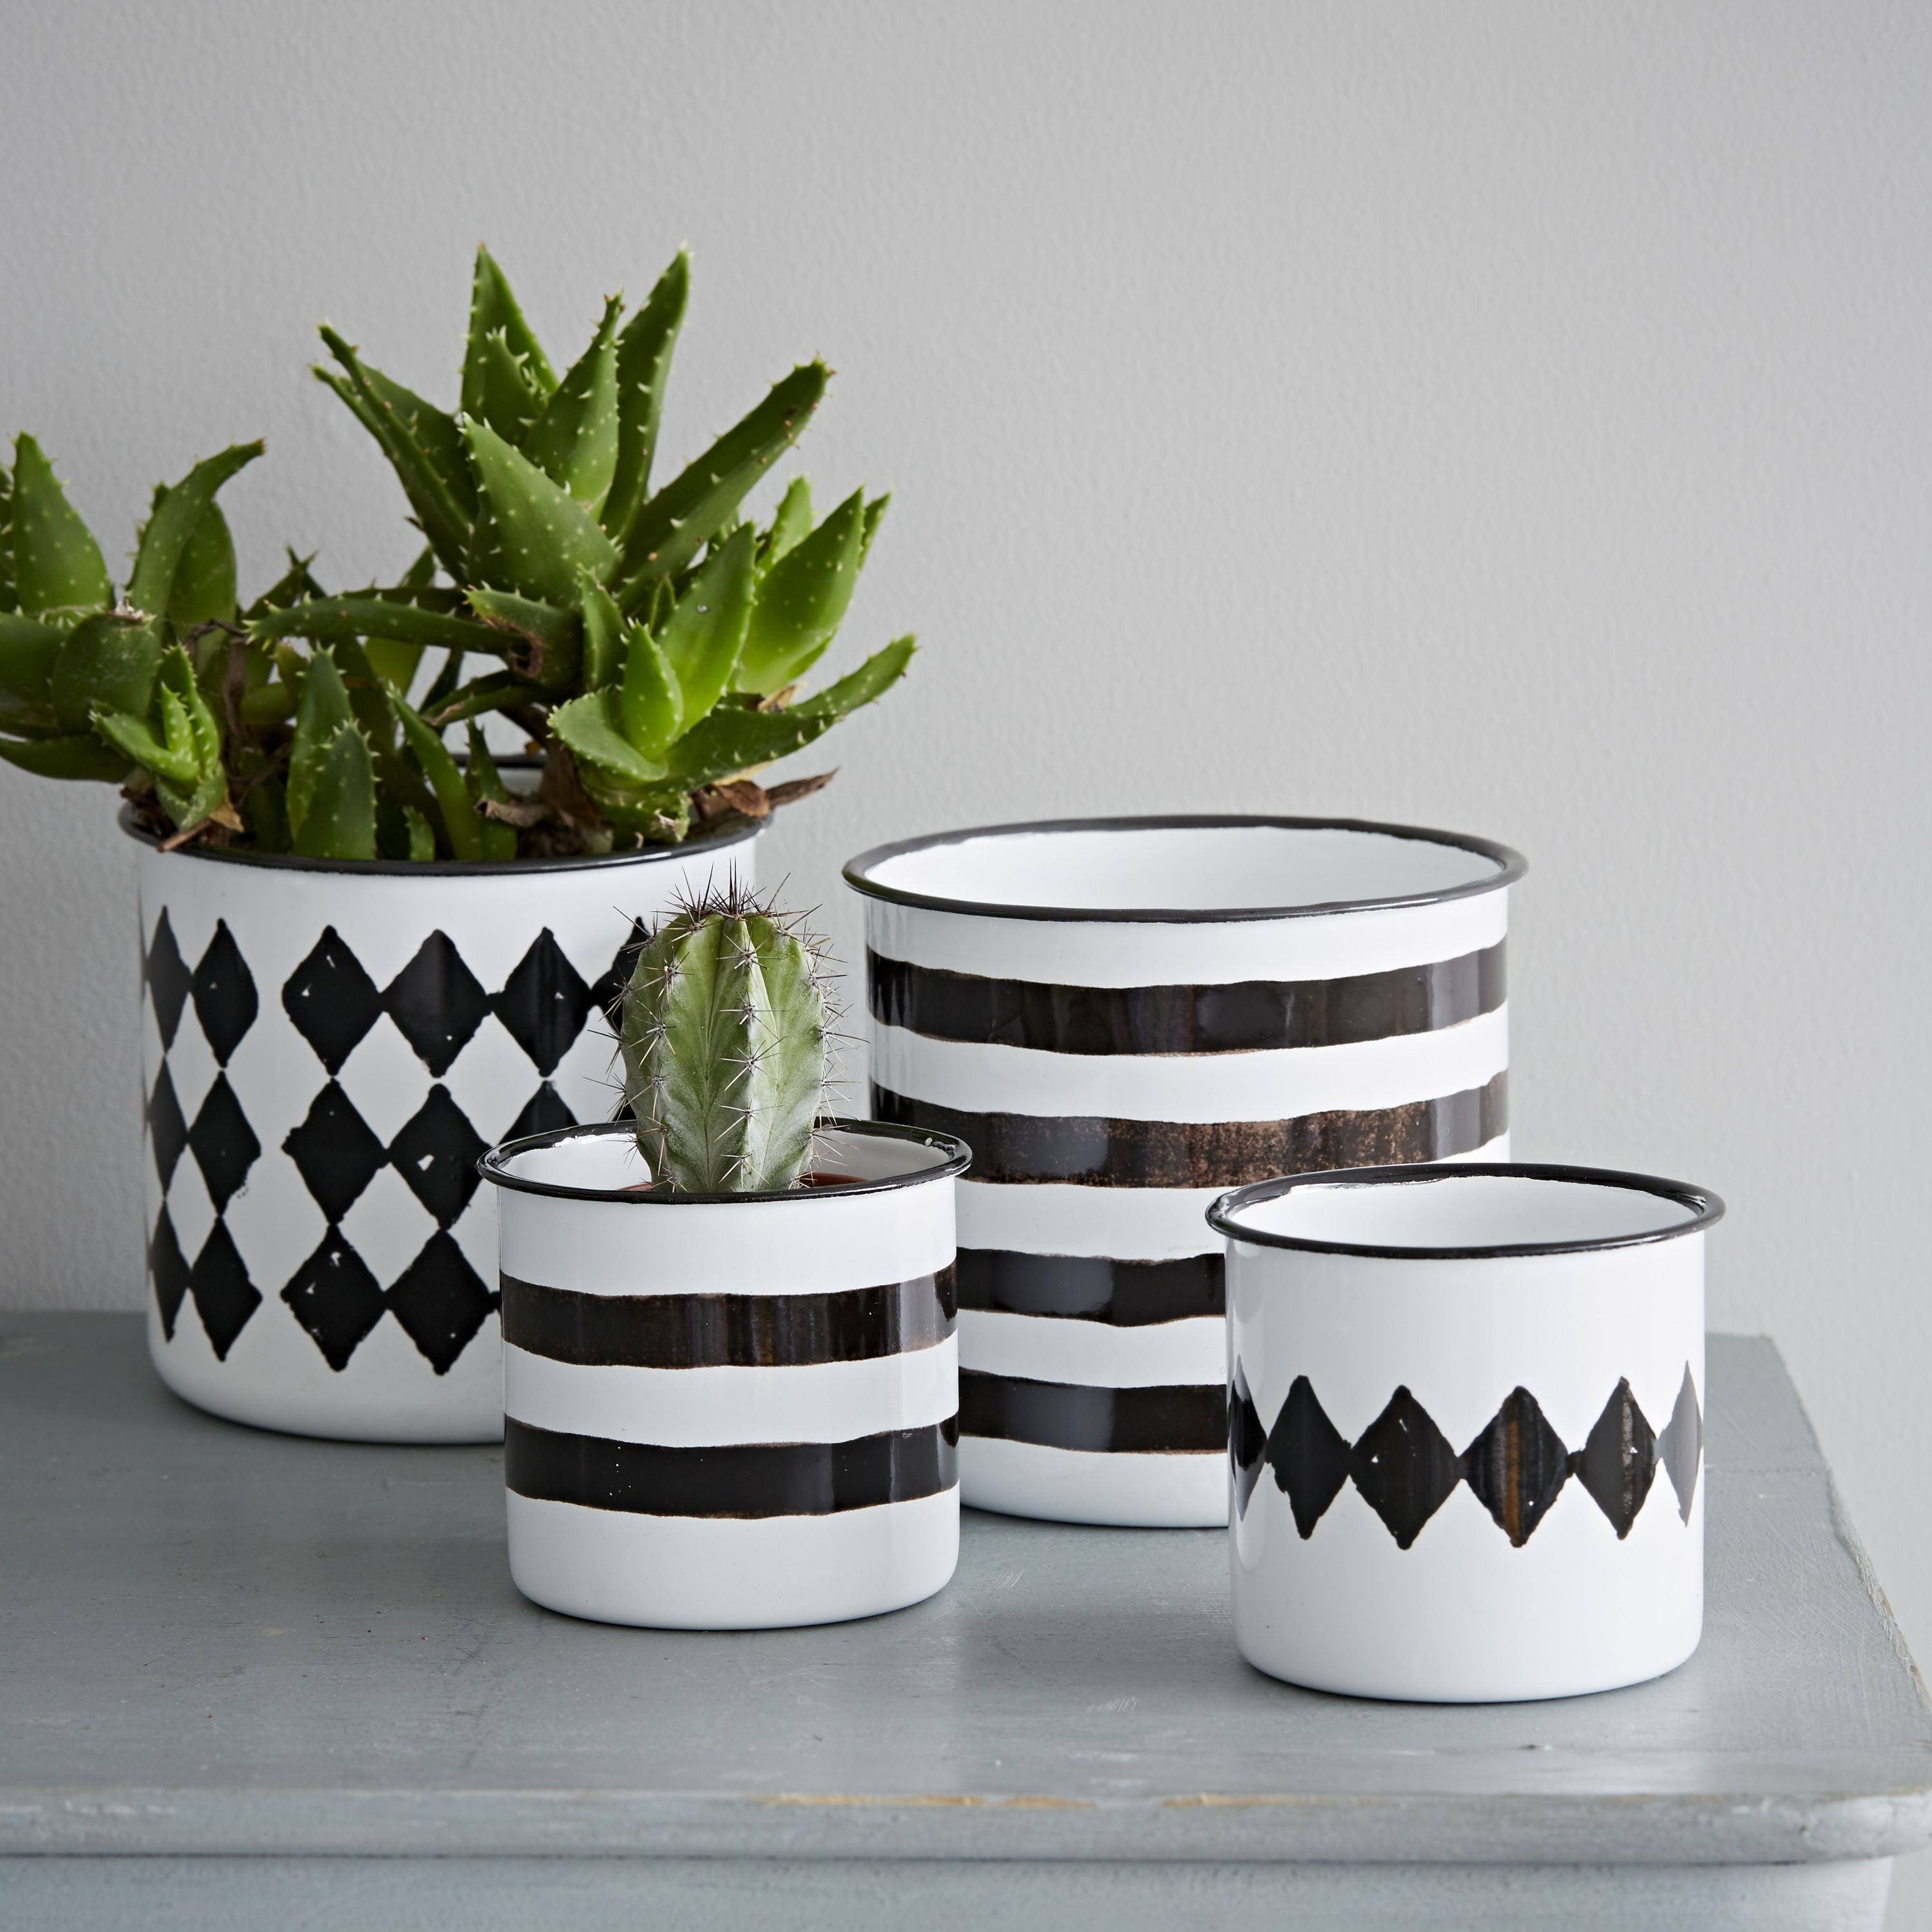 Black and white flower pots - These Black And White Enamel Pots Are Perfect For Plants But Would Be Equally Useful As